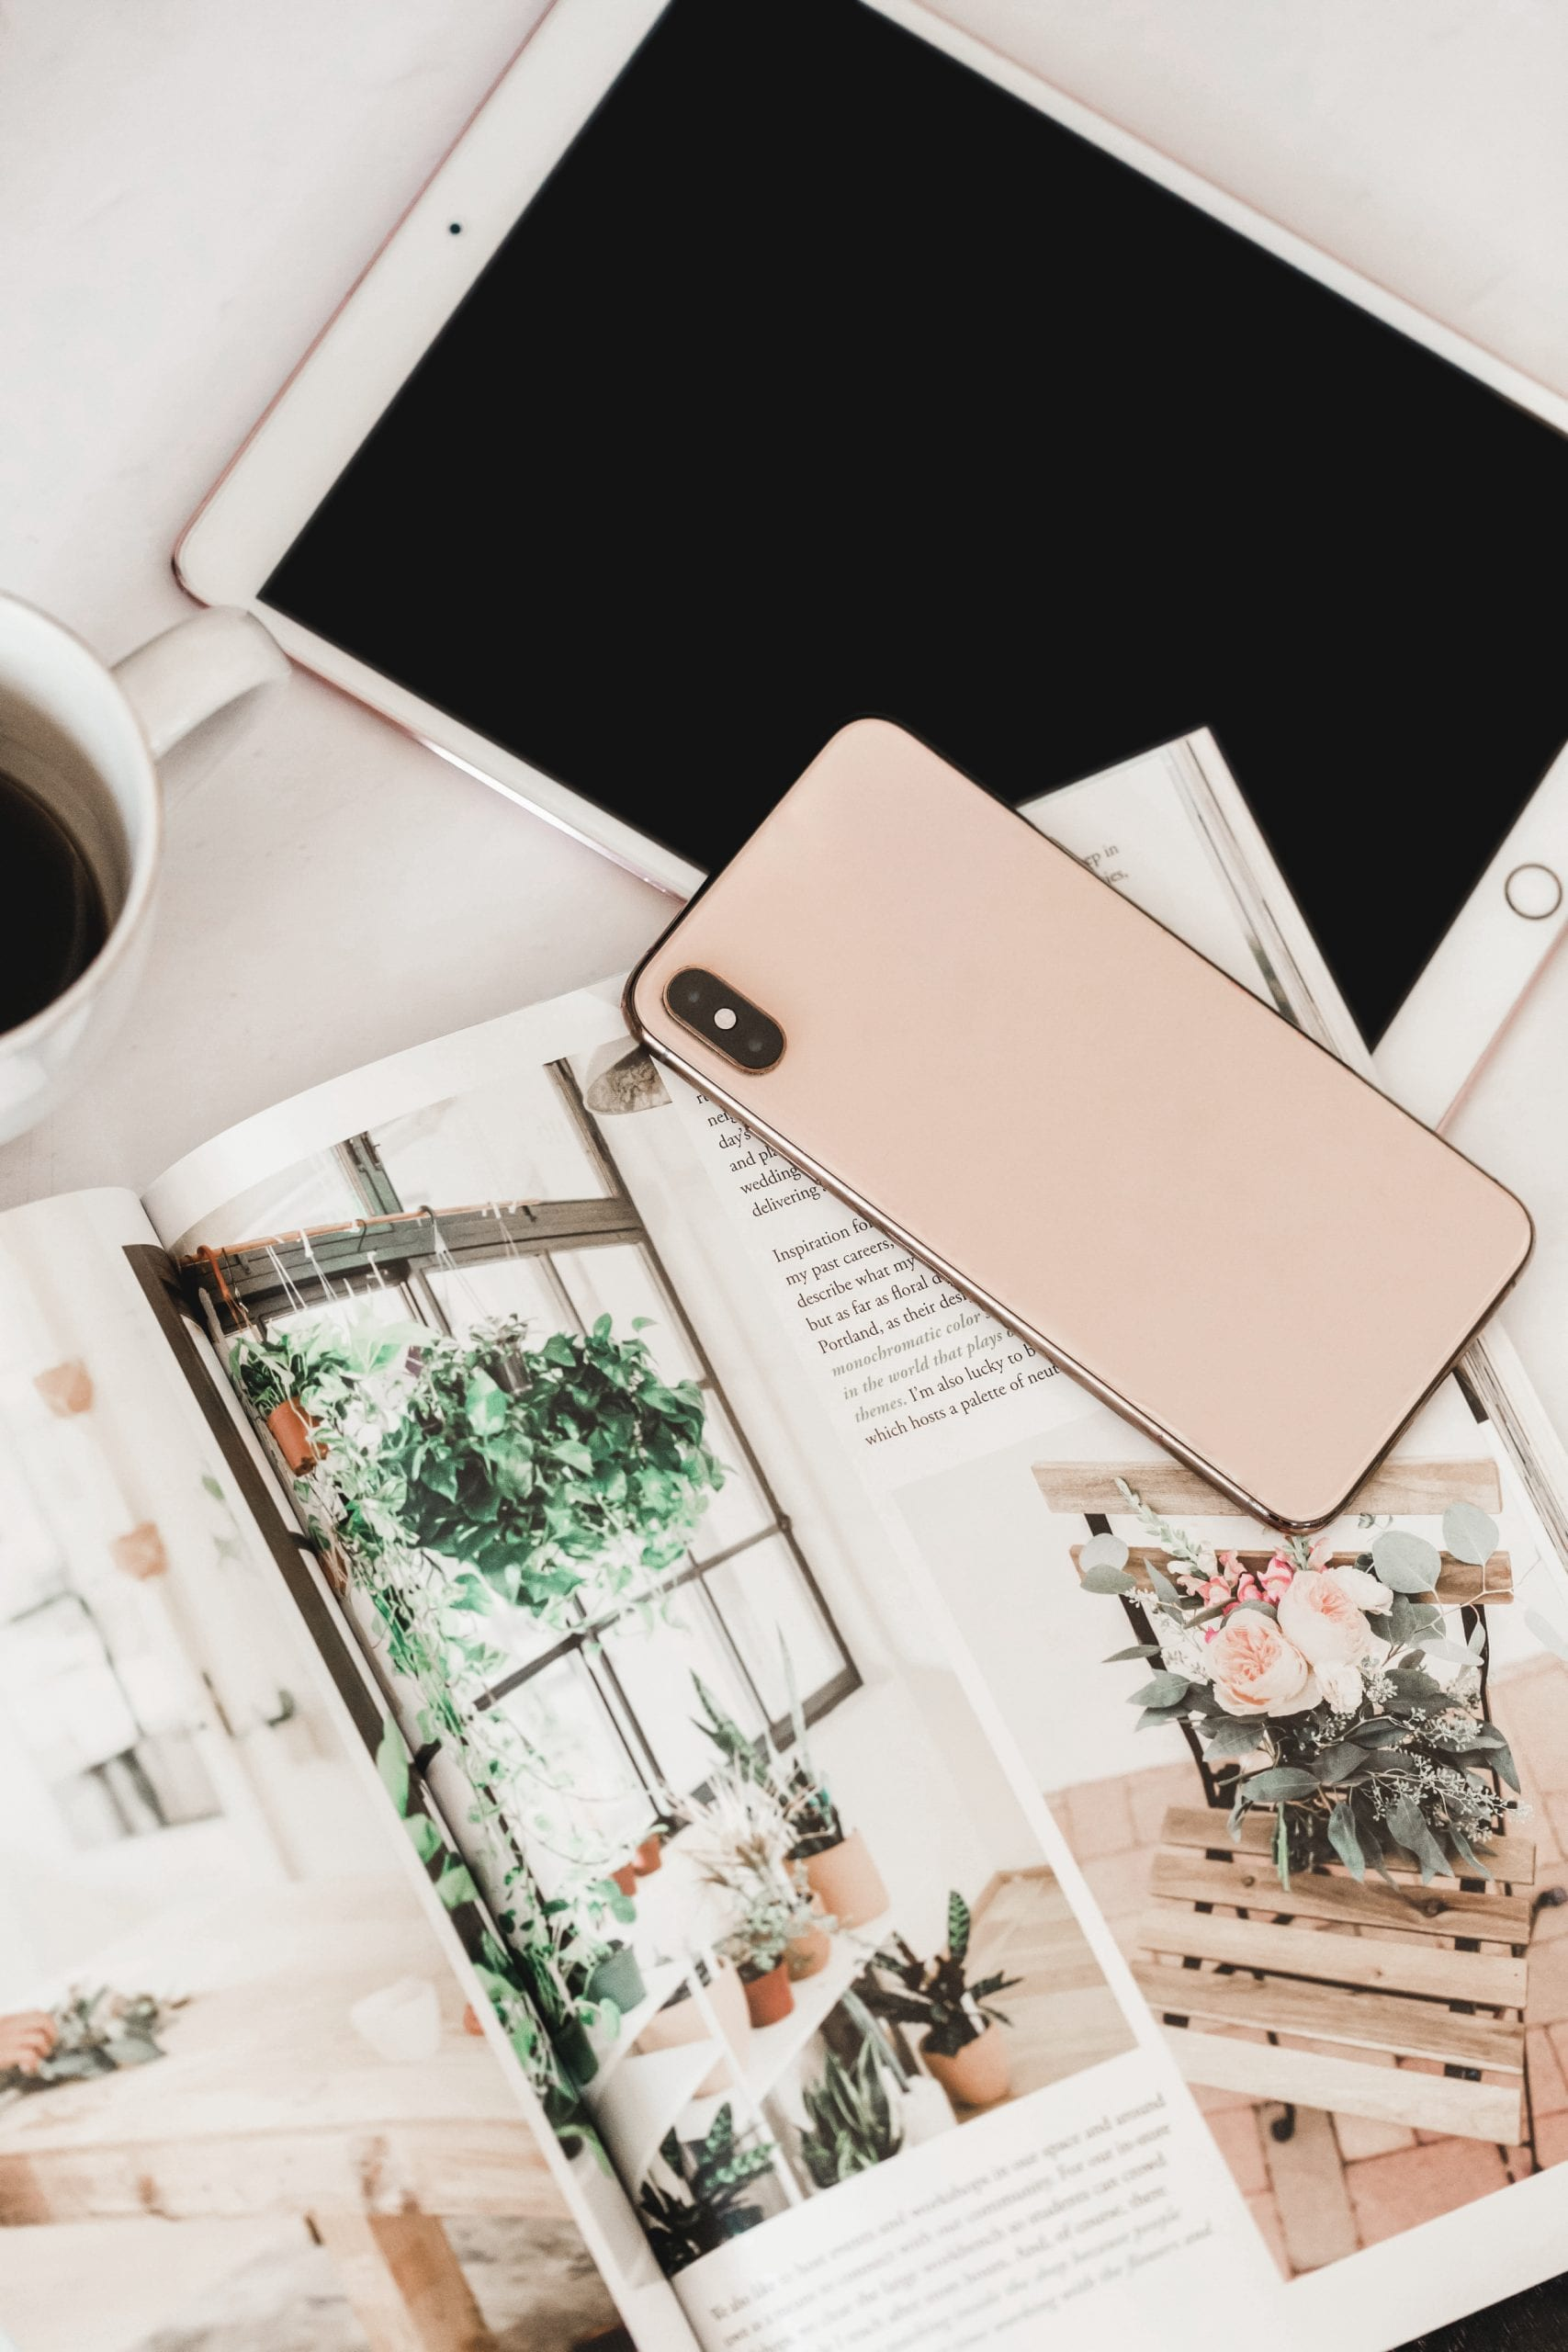 Planoly: Plan Your Insta Feed